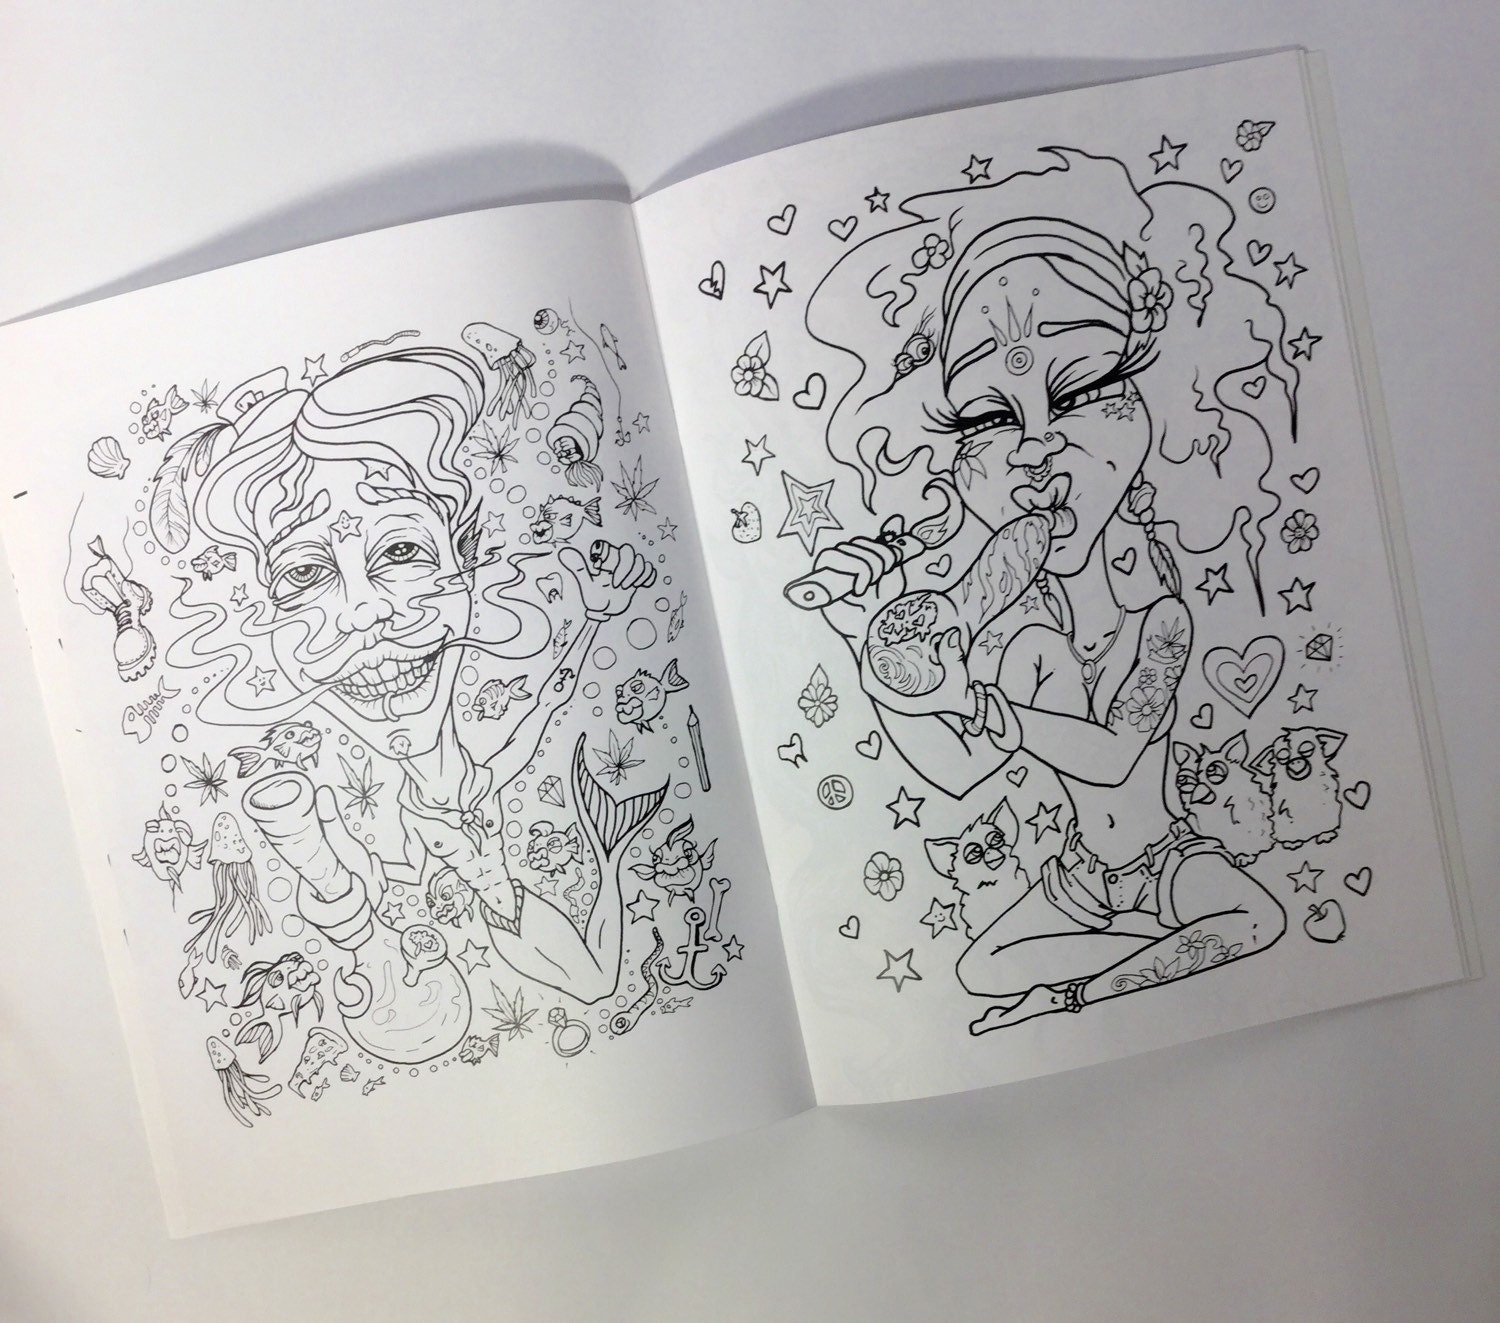 Stoner Coloring Book for Adults weed stuff adult by ...